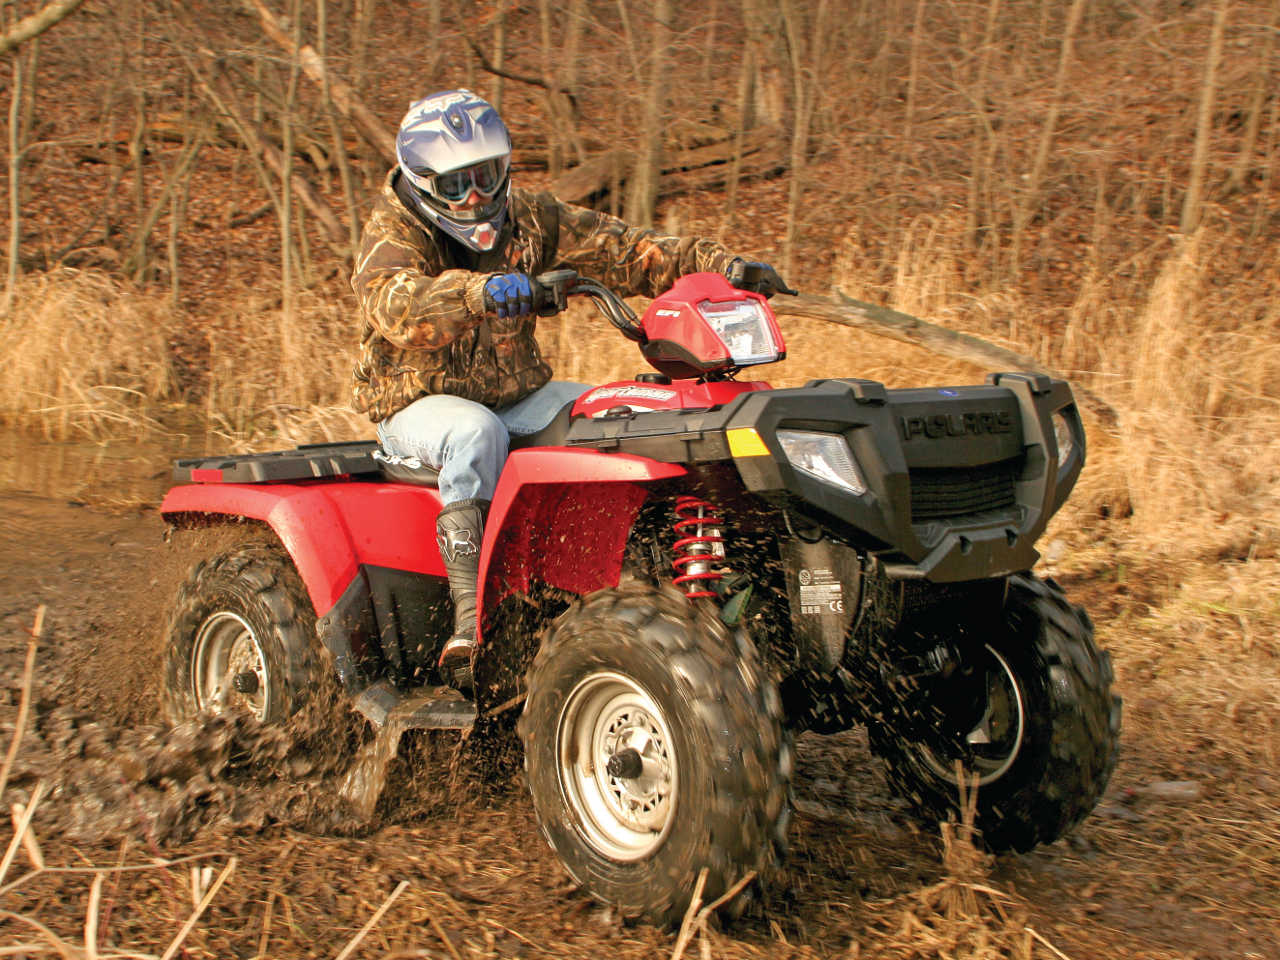 polaris sportsman 500 wiring diagram blaupunkt stereo tech troubleshooter ignition fix atv illustrated 2013 poalris red front right riding through